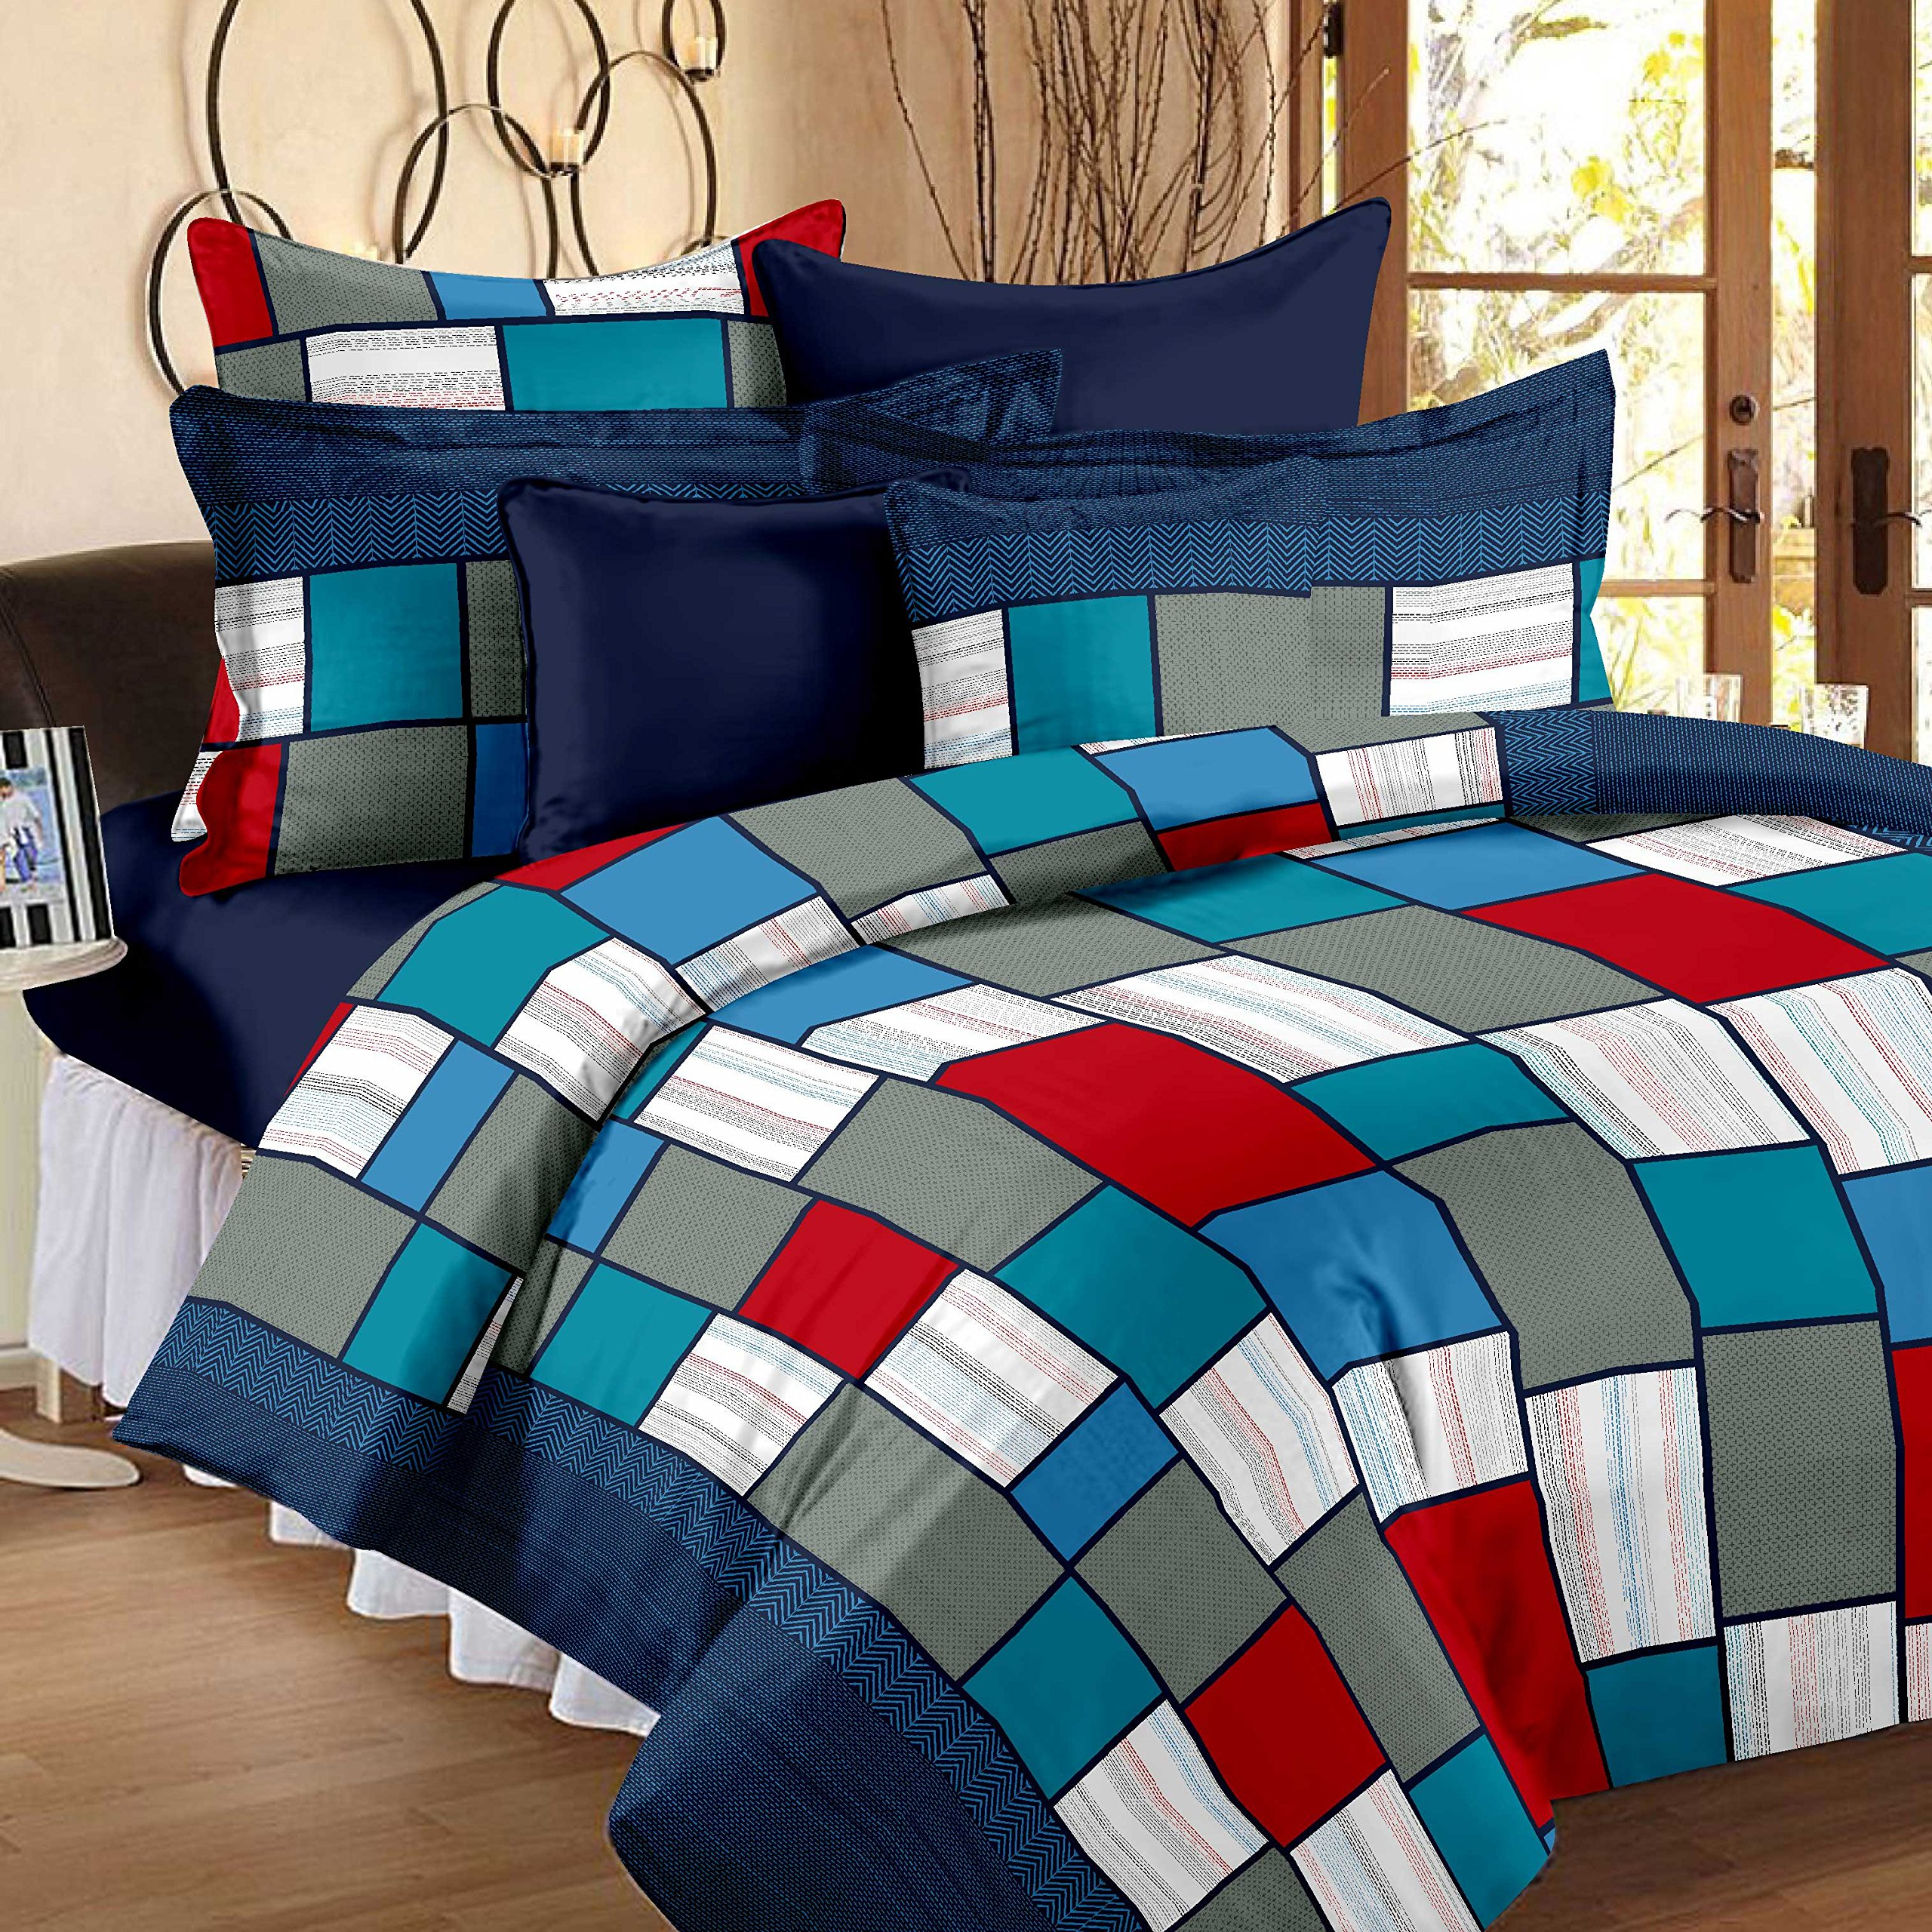 Pattern Bed Sheets Unique Inspiration Design